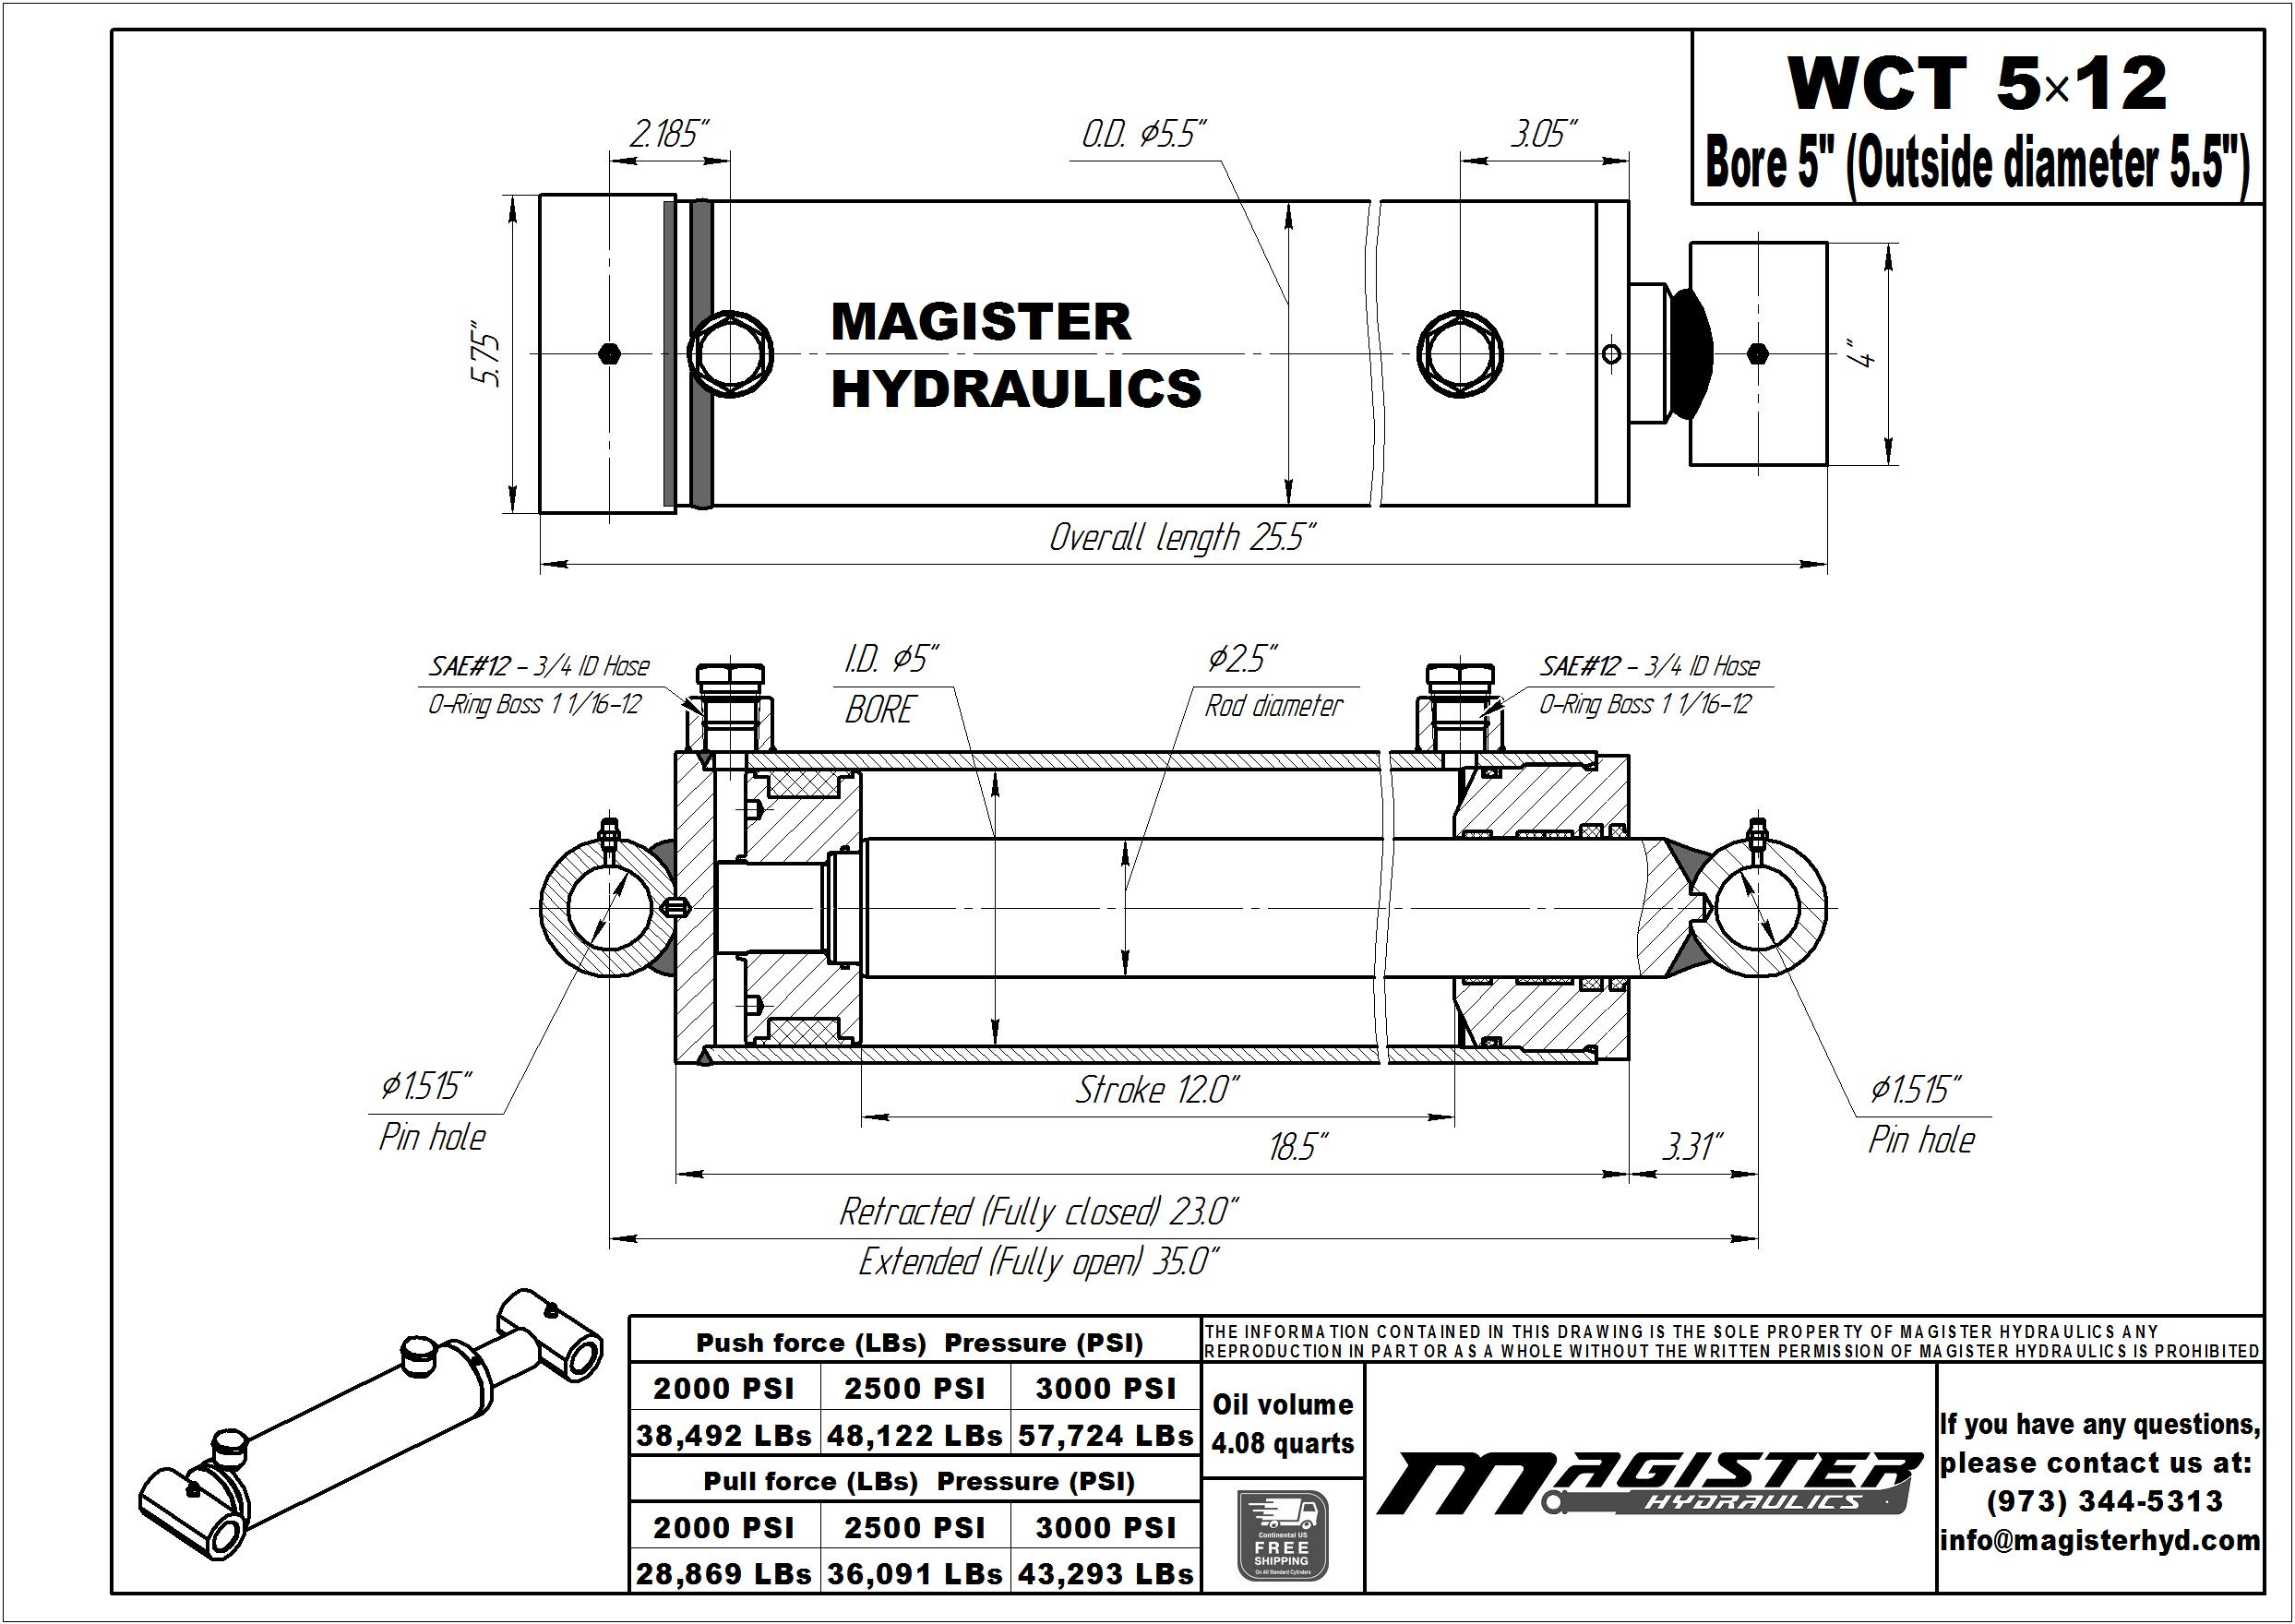 5 bore x 12 stroke hydraulic cylinder, welded cross tube double acting cylinder | Magister Hydraulics